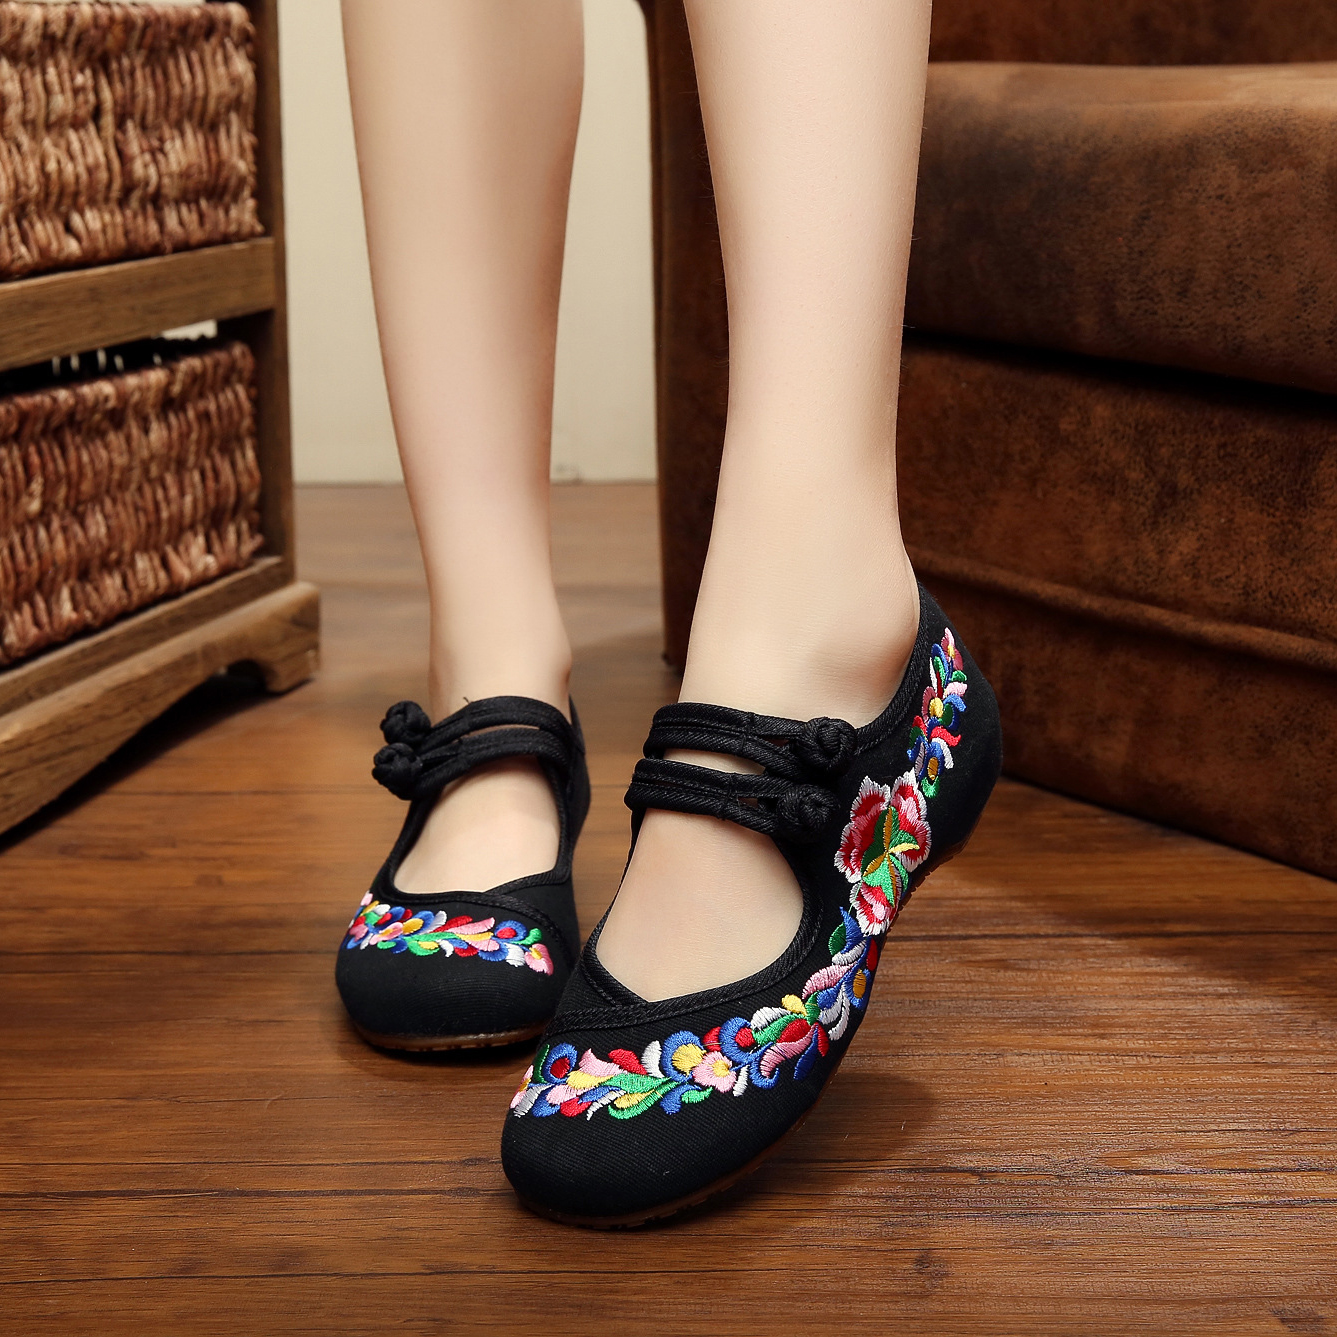 New casual fashion flower embroidery women canvas shoes autumn flats shoes for ladies dance shoes chaussure femme<br><br>Aliexpress